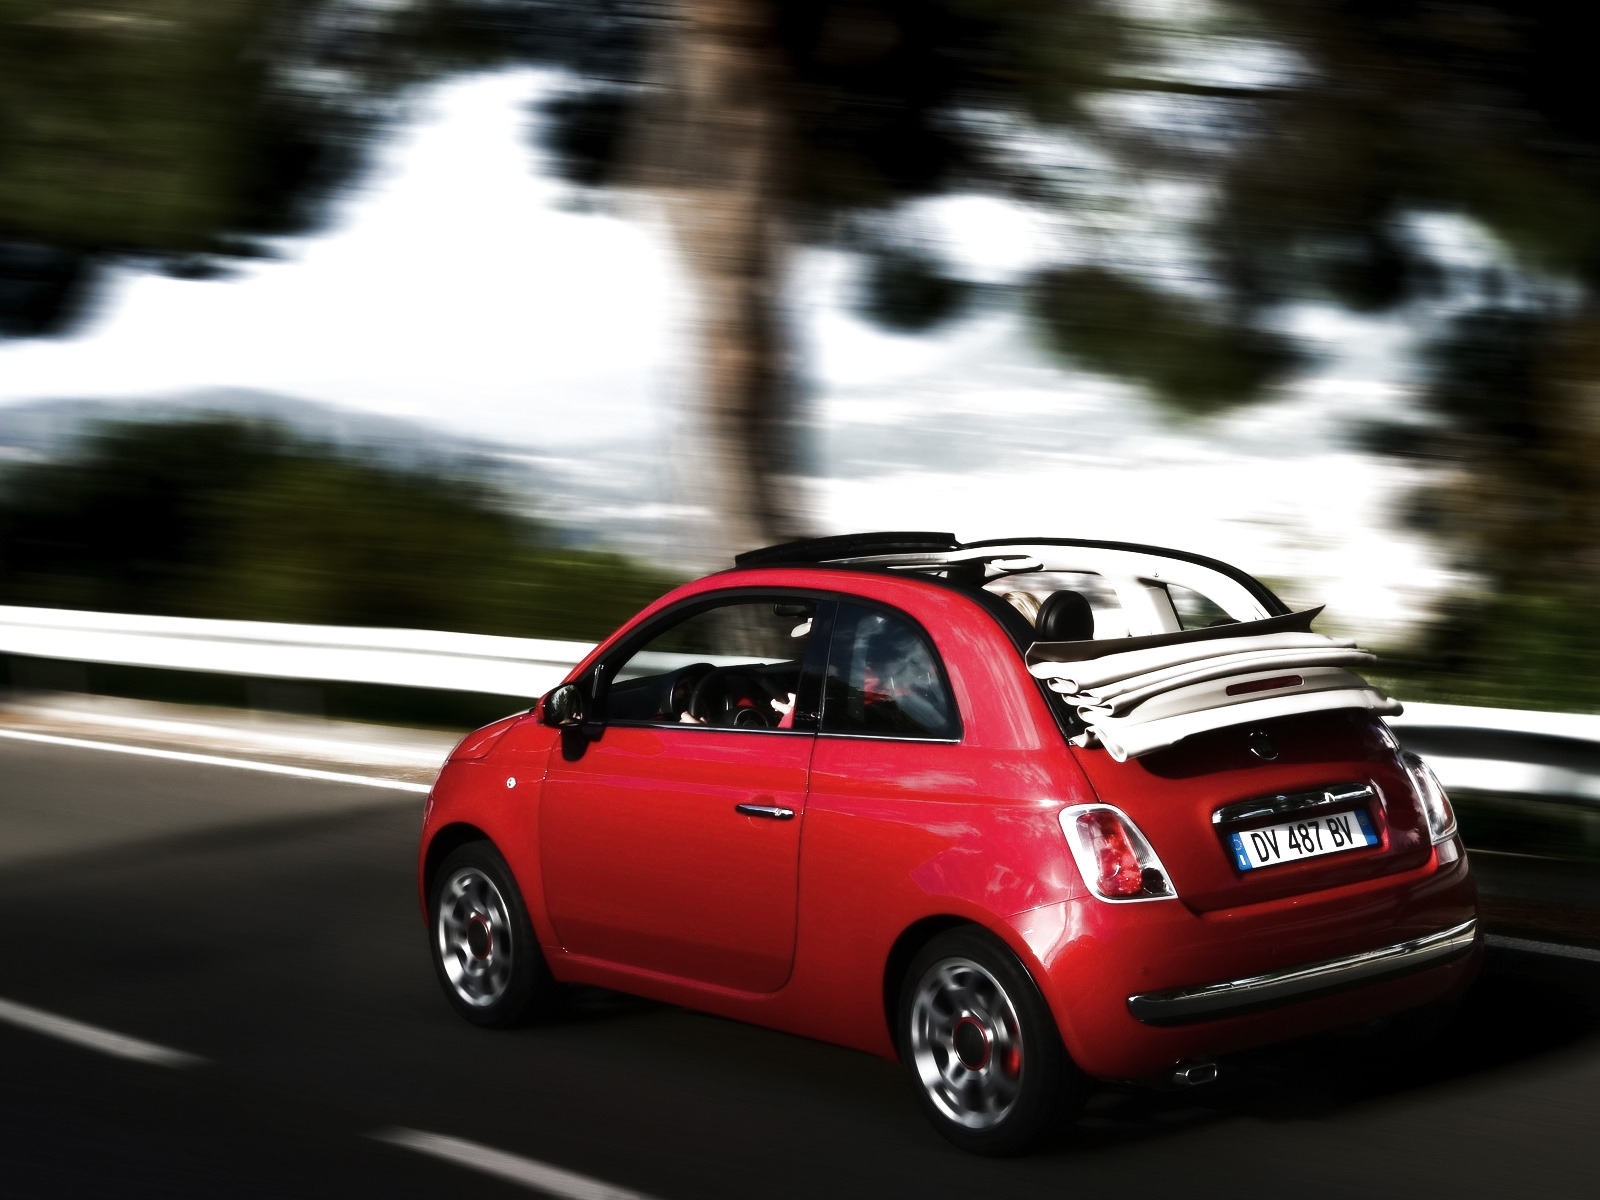 2010 Fiat 500C Speed for 1600 x 1200 resolution